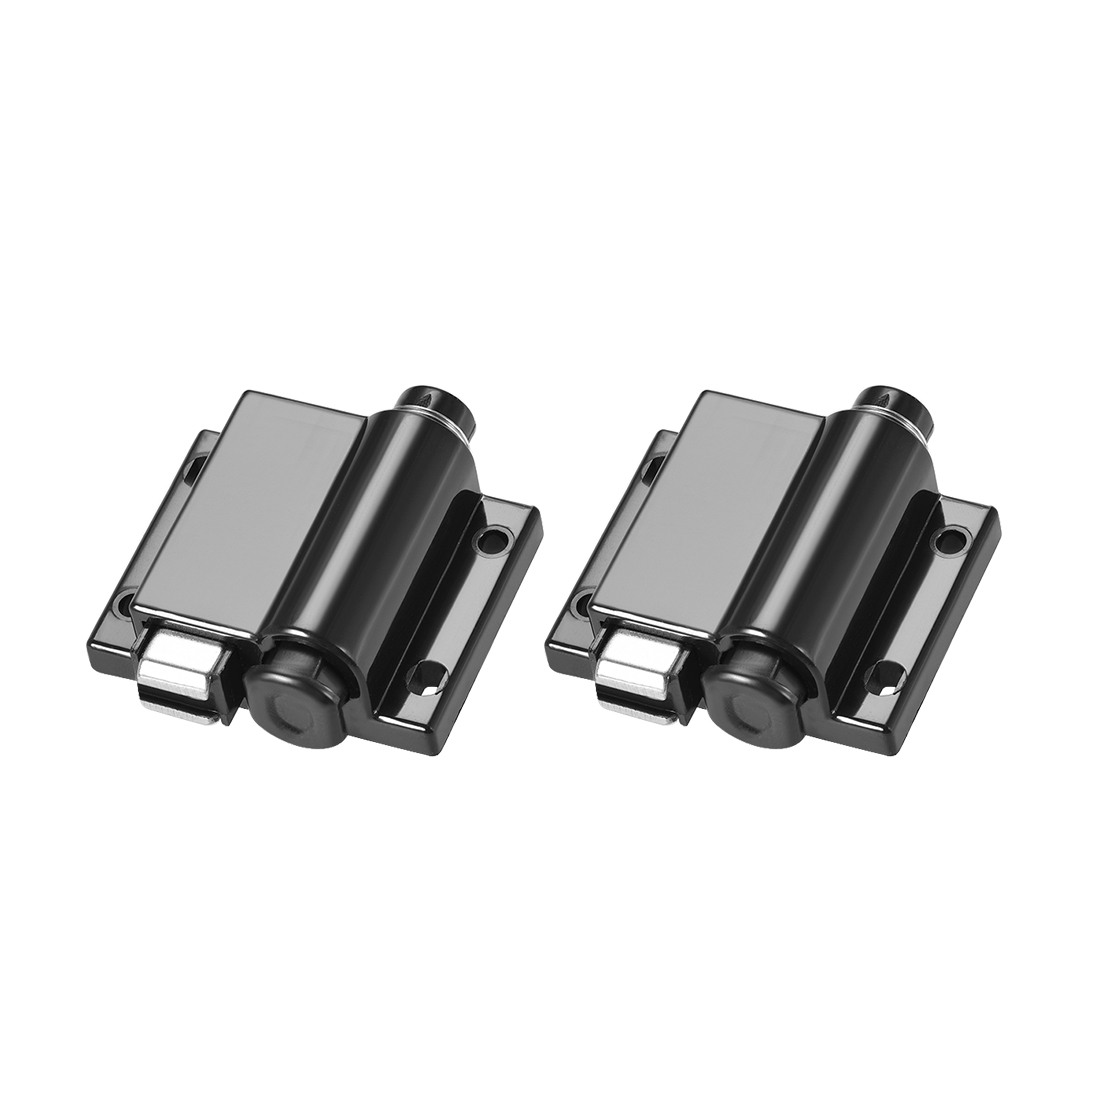 Touch Magnetic Latches Press Catch Latch for Cabinet Door Cupboard Black 2pcs